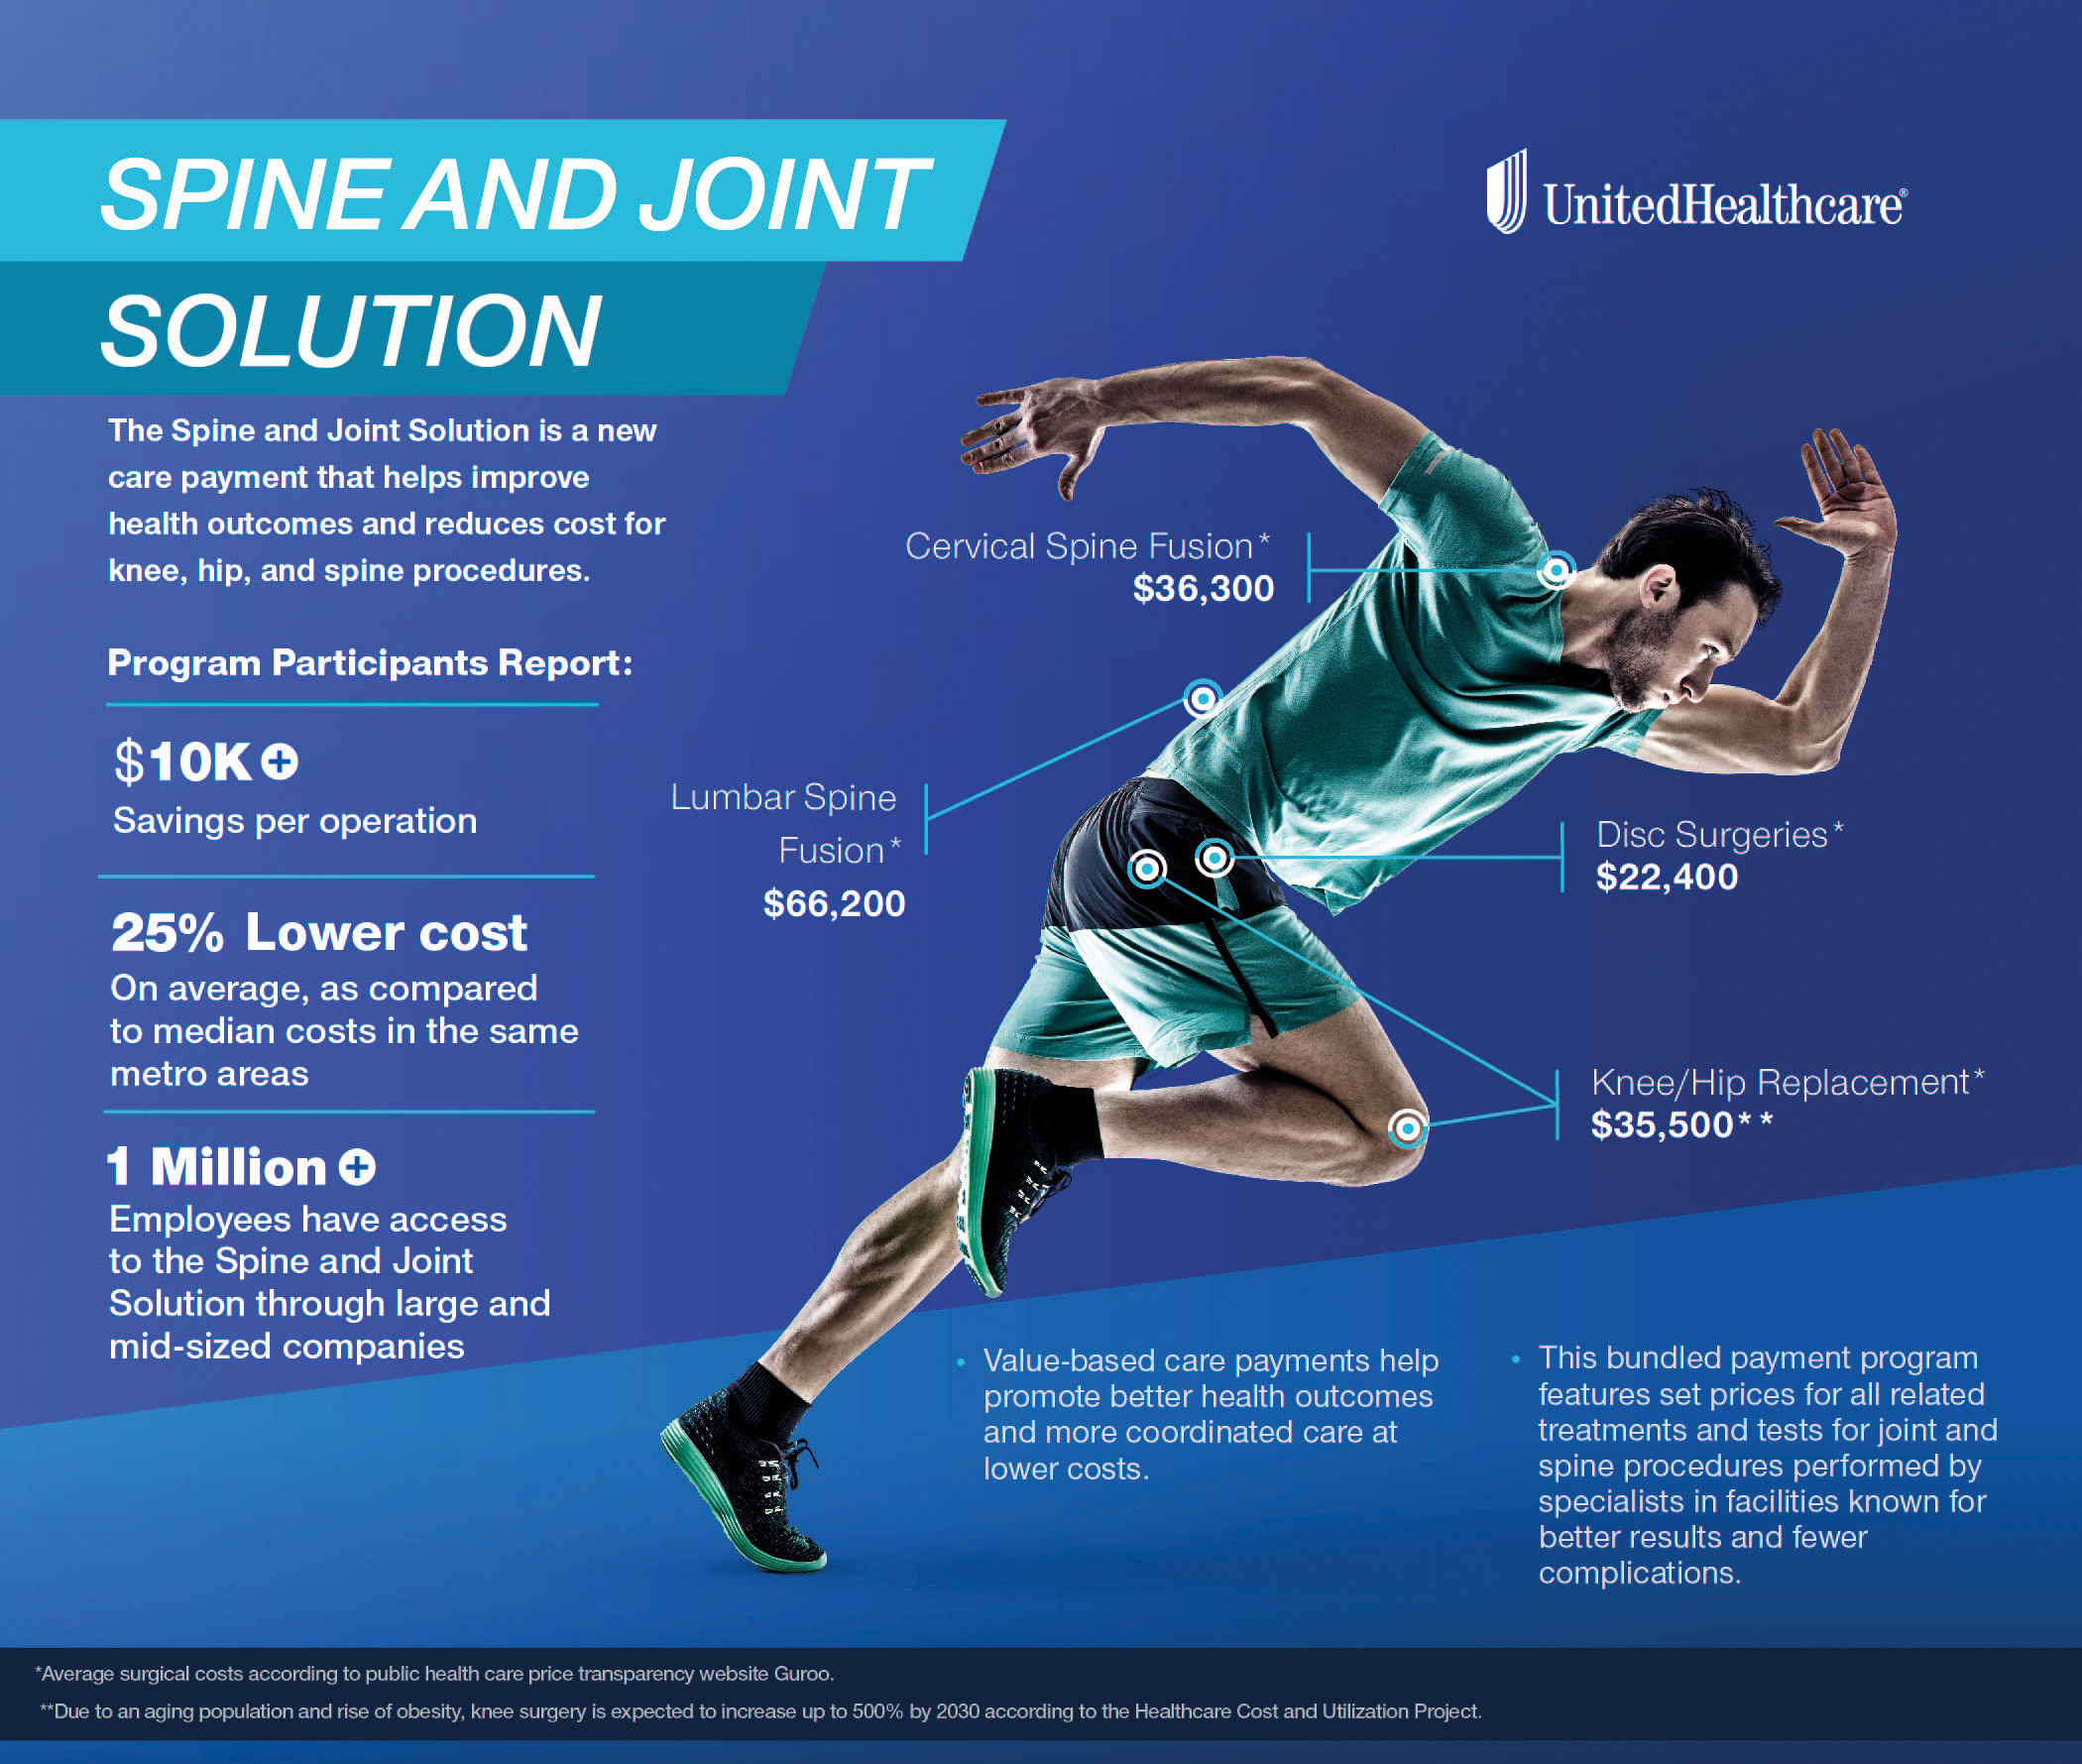 The Spine and Joint Solution from UnitedHealthcare is a new care payment that helps improve outcomes and reduces cost for knee, hip and spine procedures (Graphic: UnitedHealthcare).